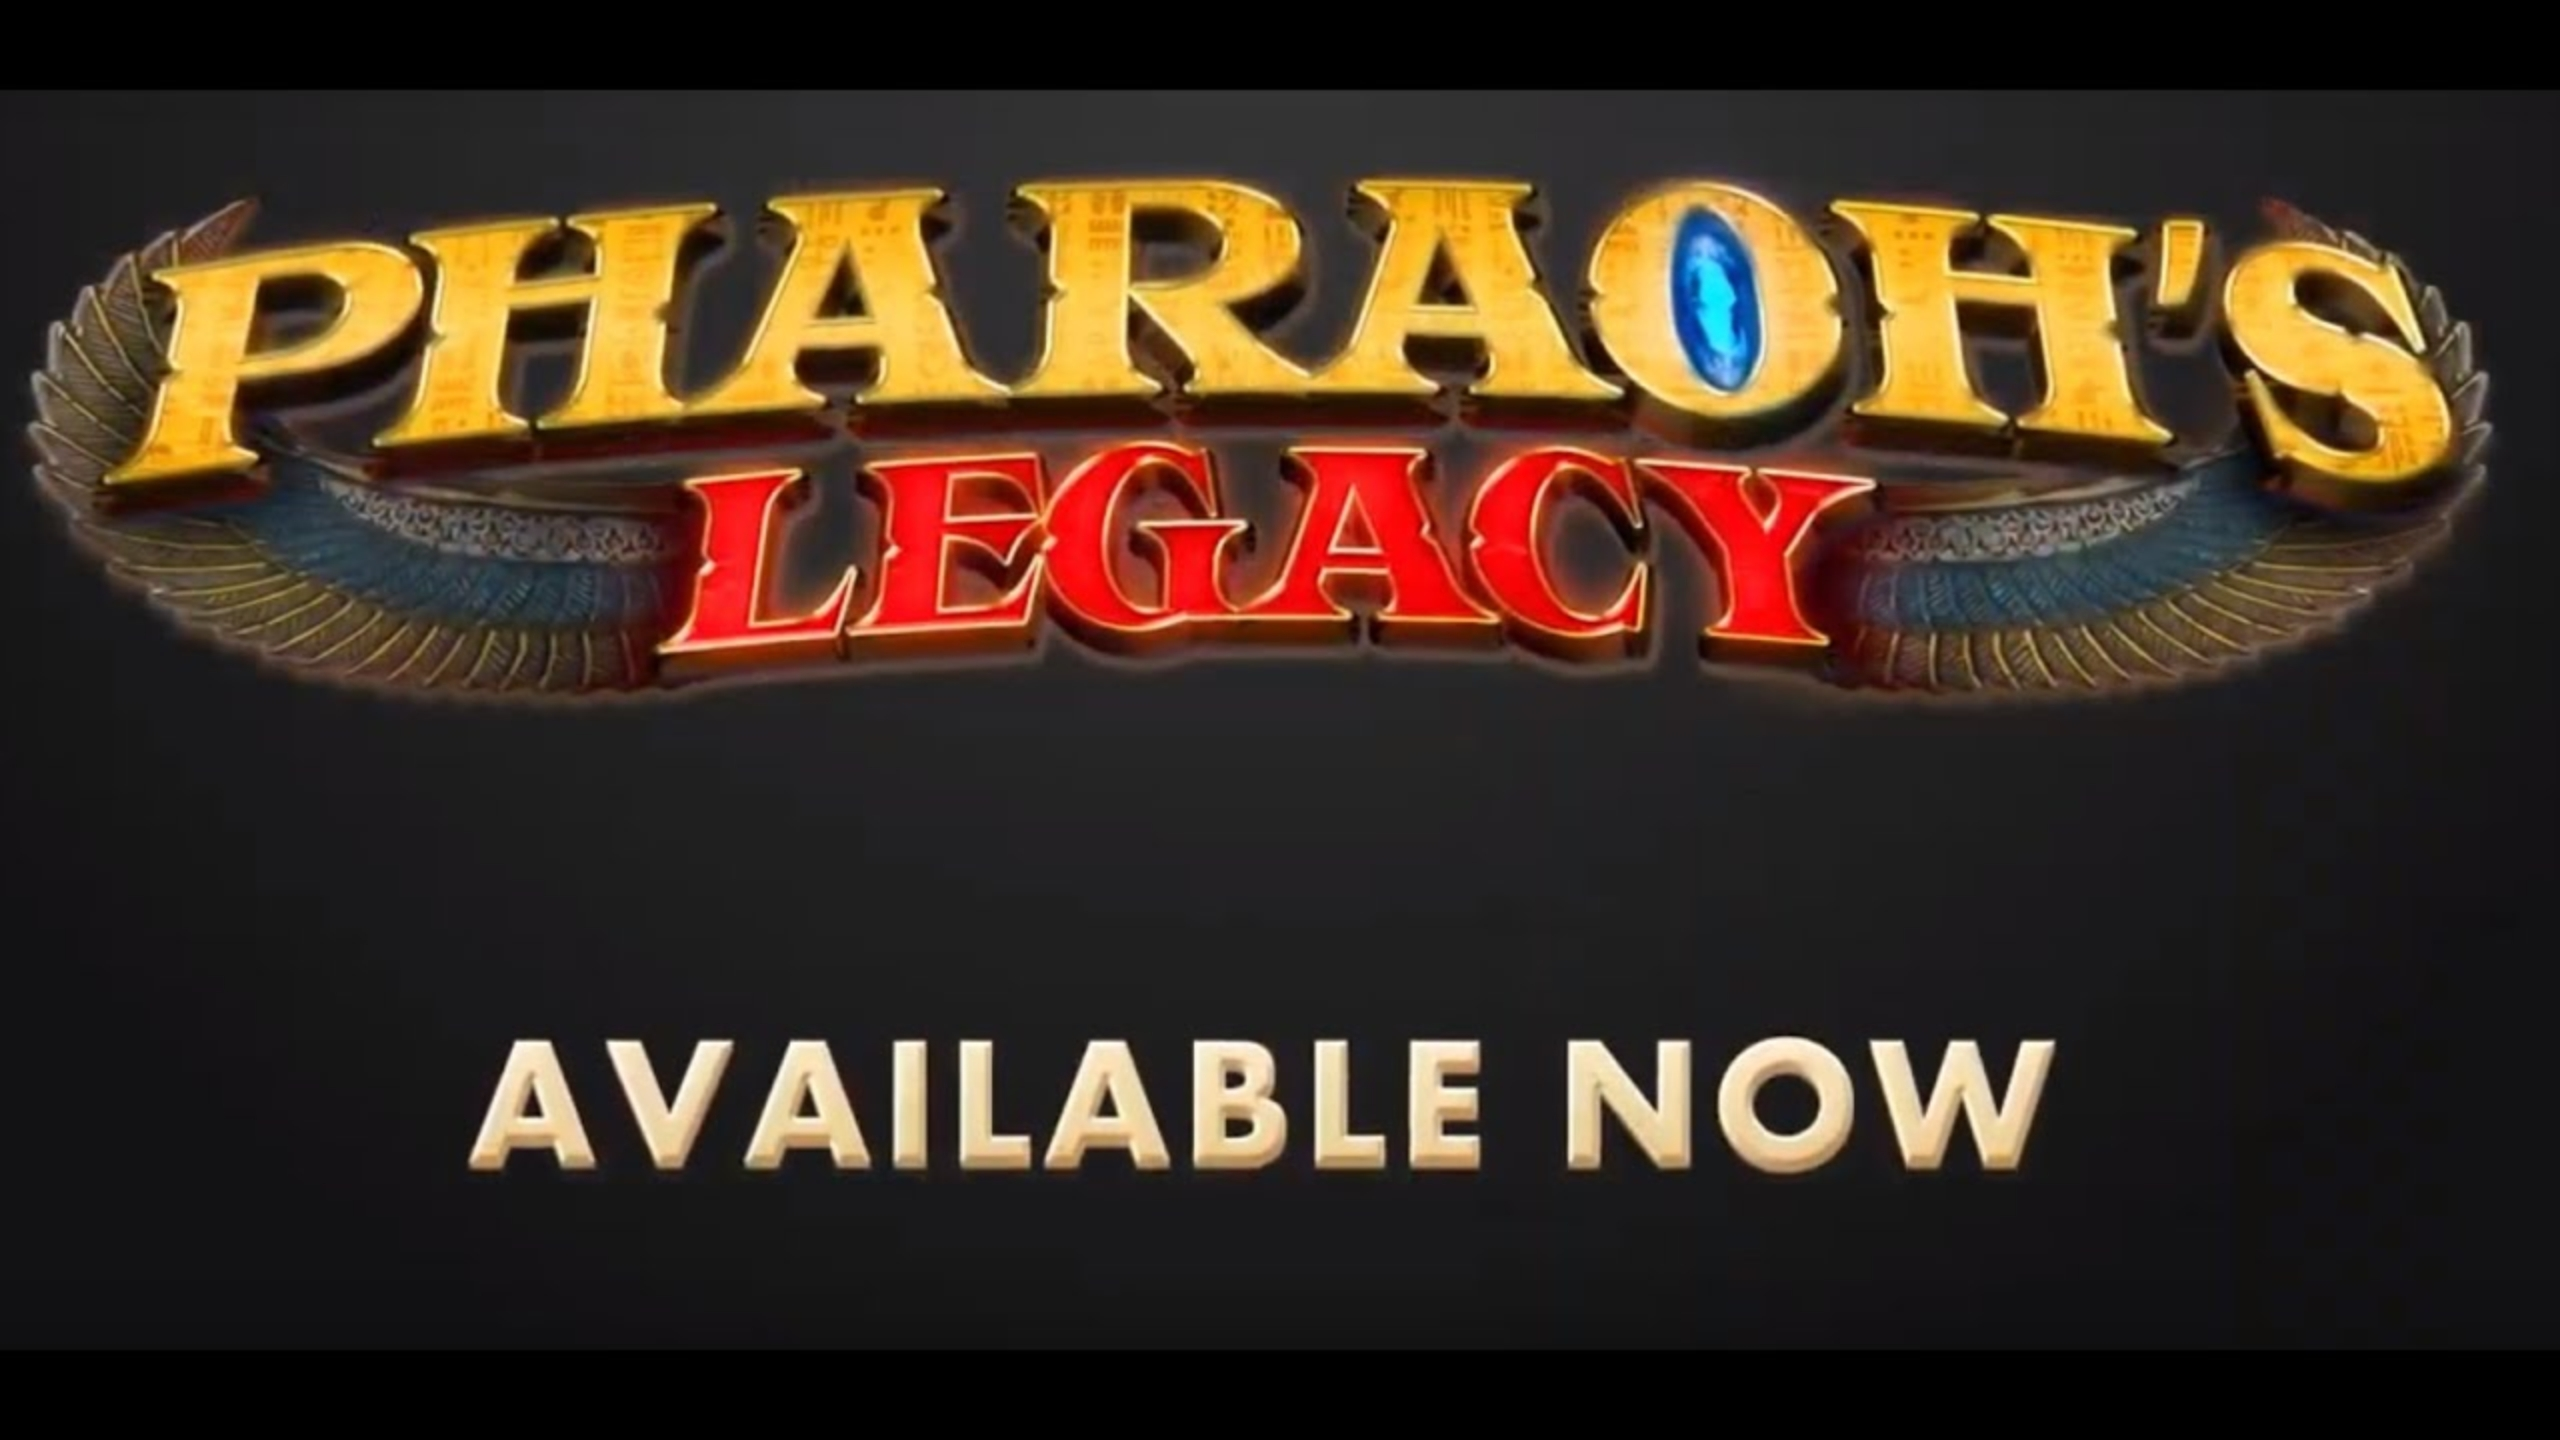 The Pharaoh's Legacy Online Slot Demo Game by FBM